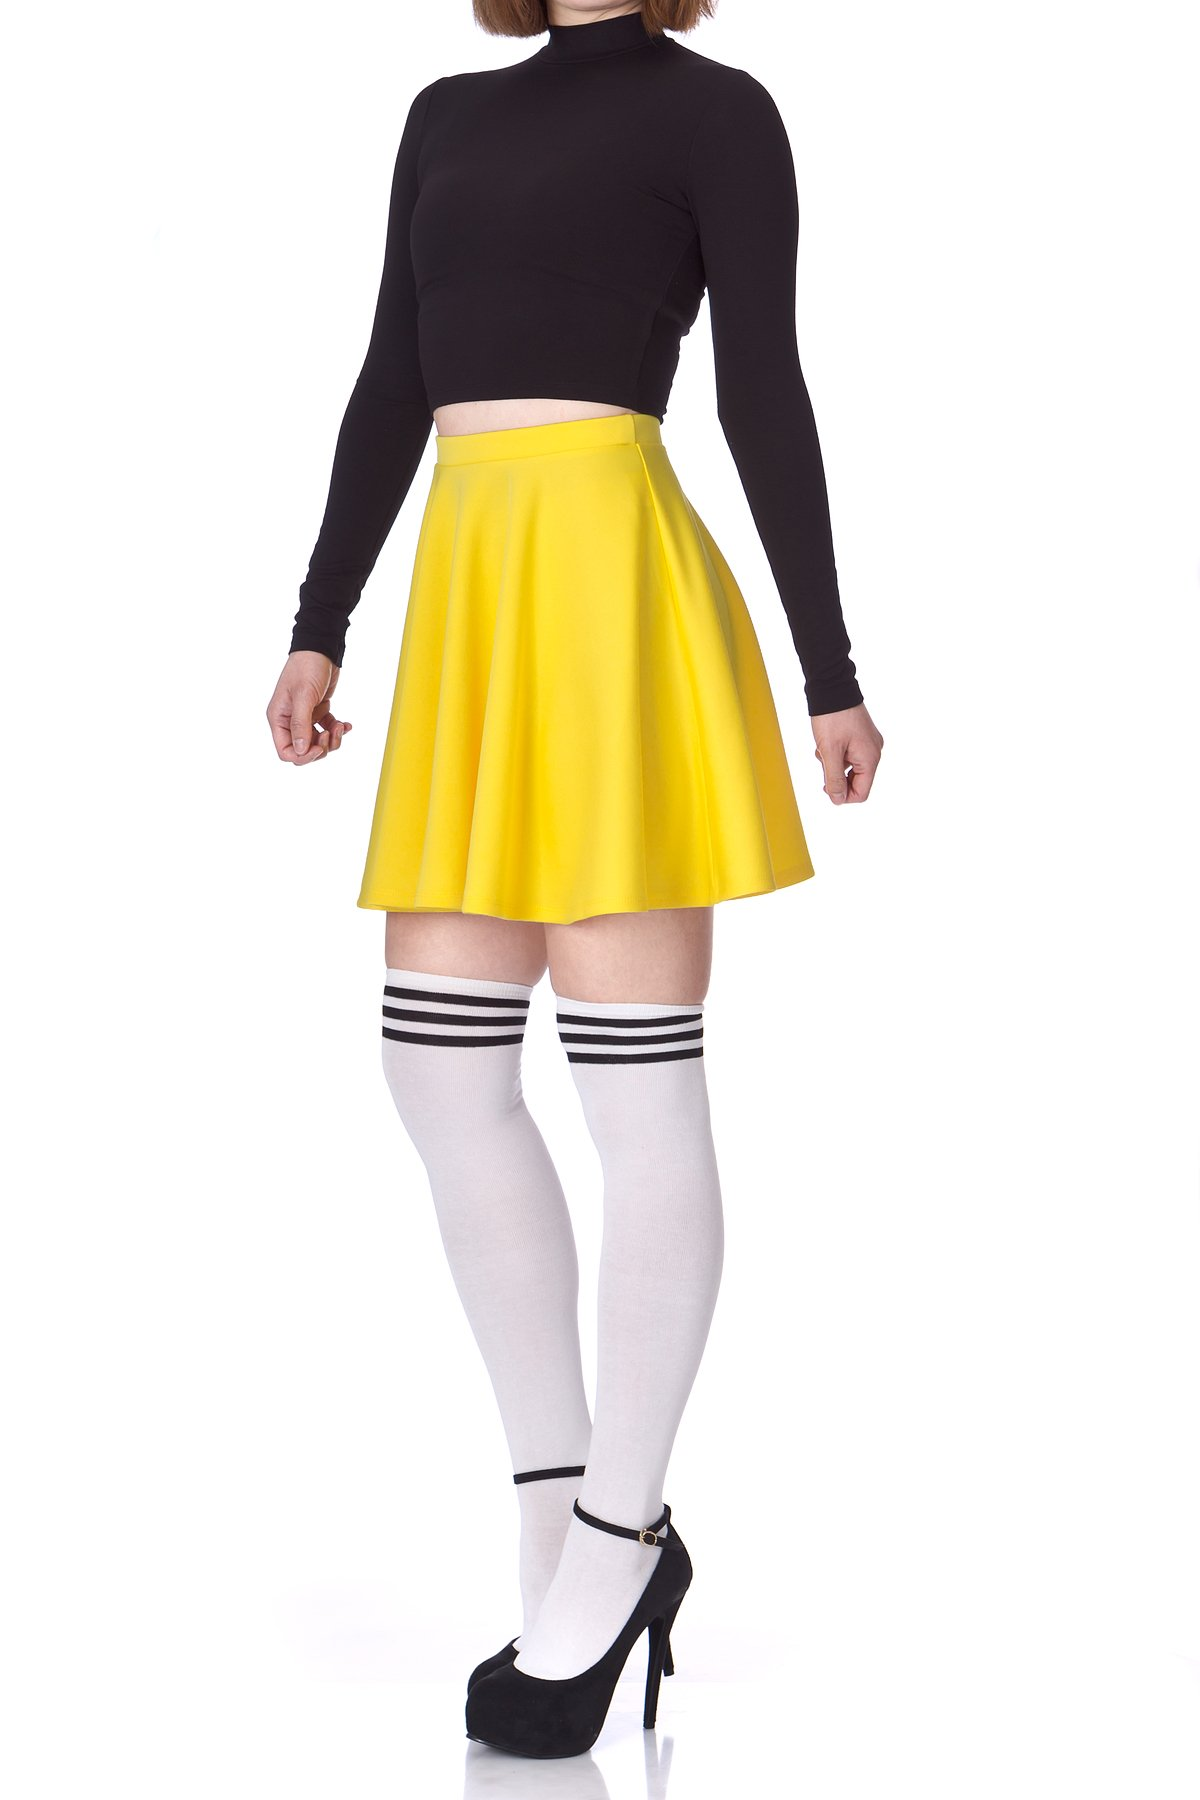 Flouncy High Waist A line Full Flared Circle Swing Dance Party Casual Skater Short Mini Skirt Yellow 04 1